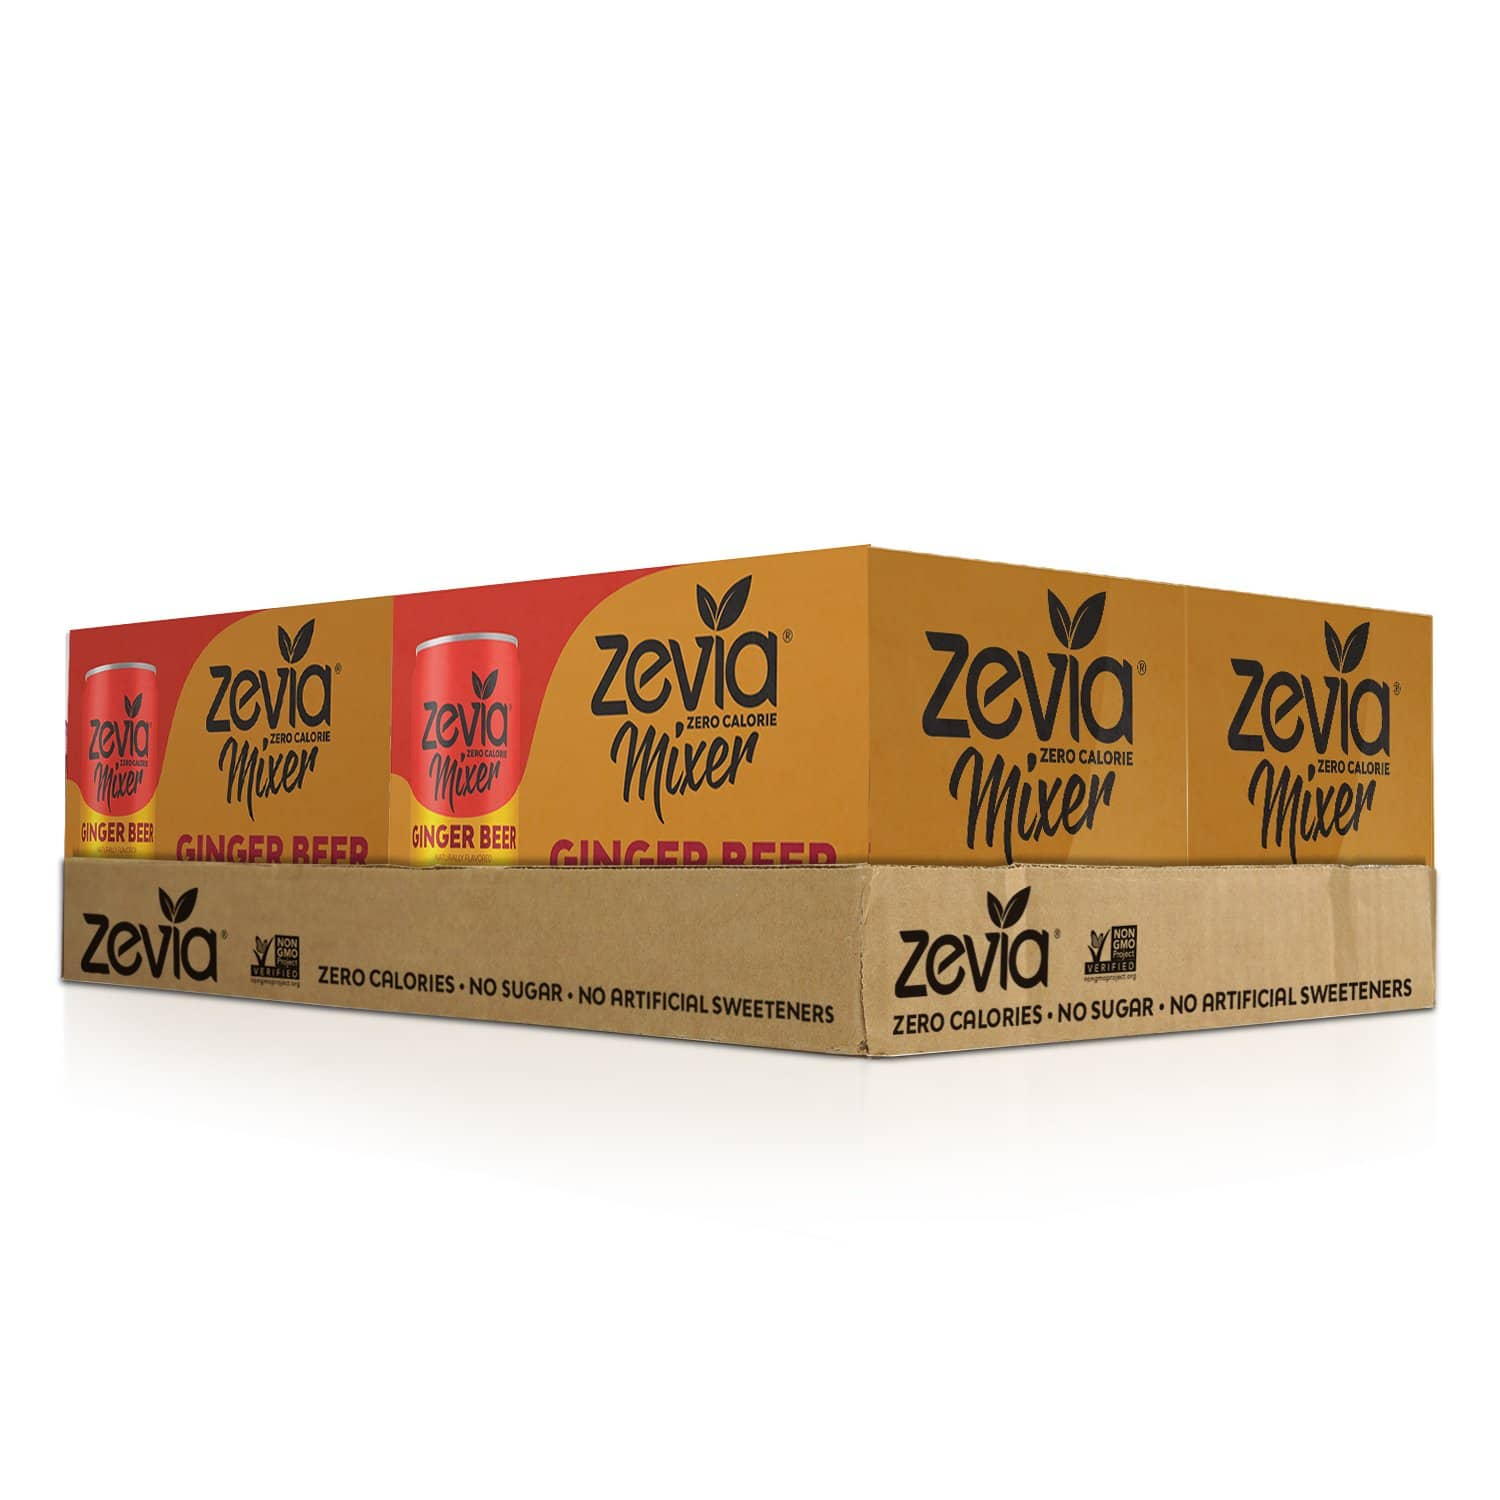 Zevia Ginger Beer, 7.5oz (Pack of 12) Zero Calories or Sugar, Naturally Sweetened with Stevia Leaf Extract , A Perfect Drink Mixer: As low as $6.78 w/S&S